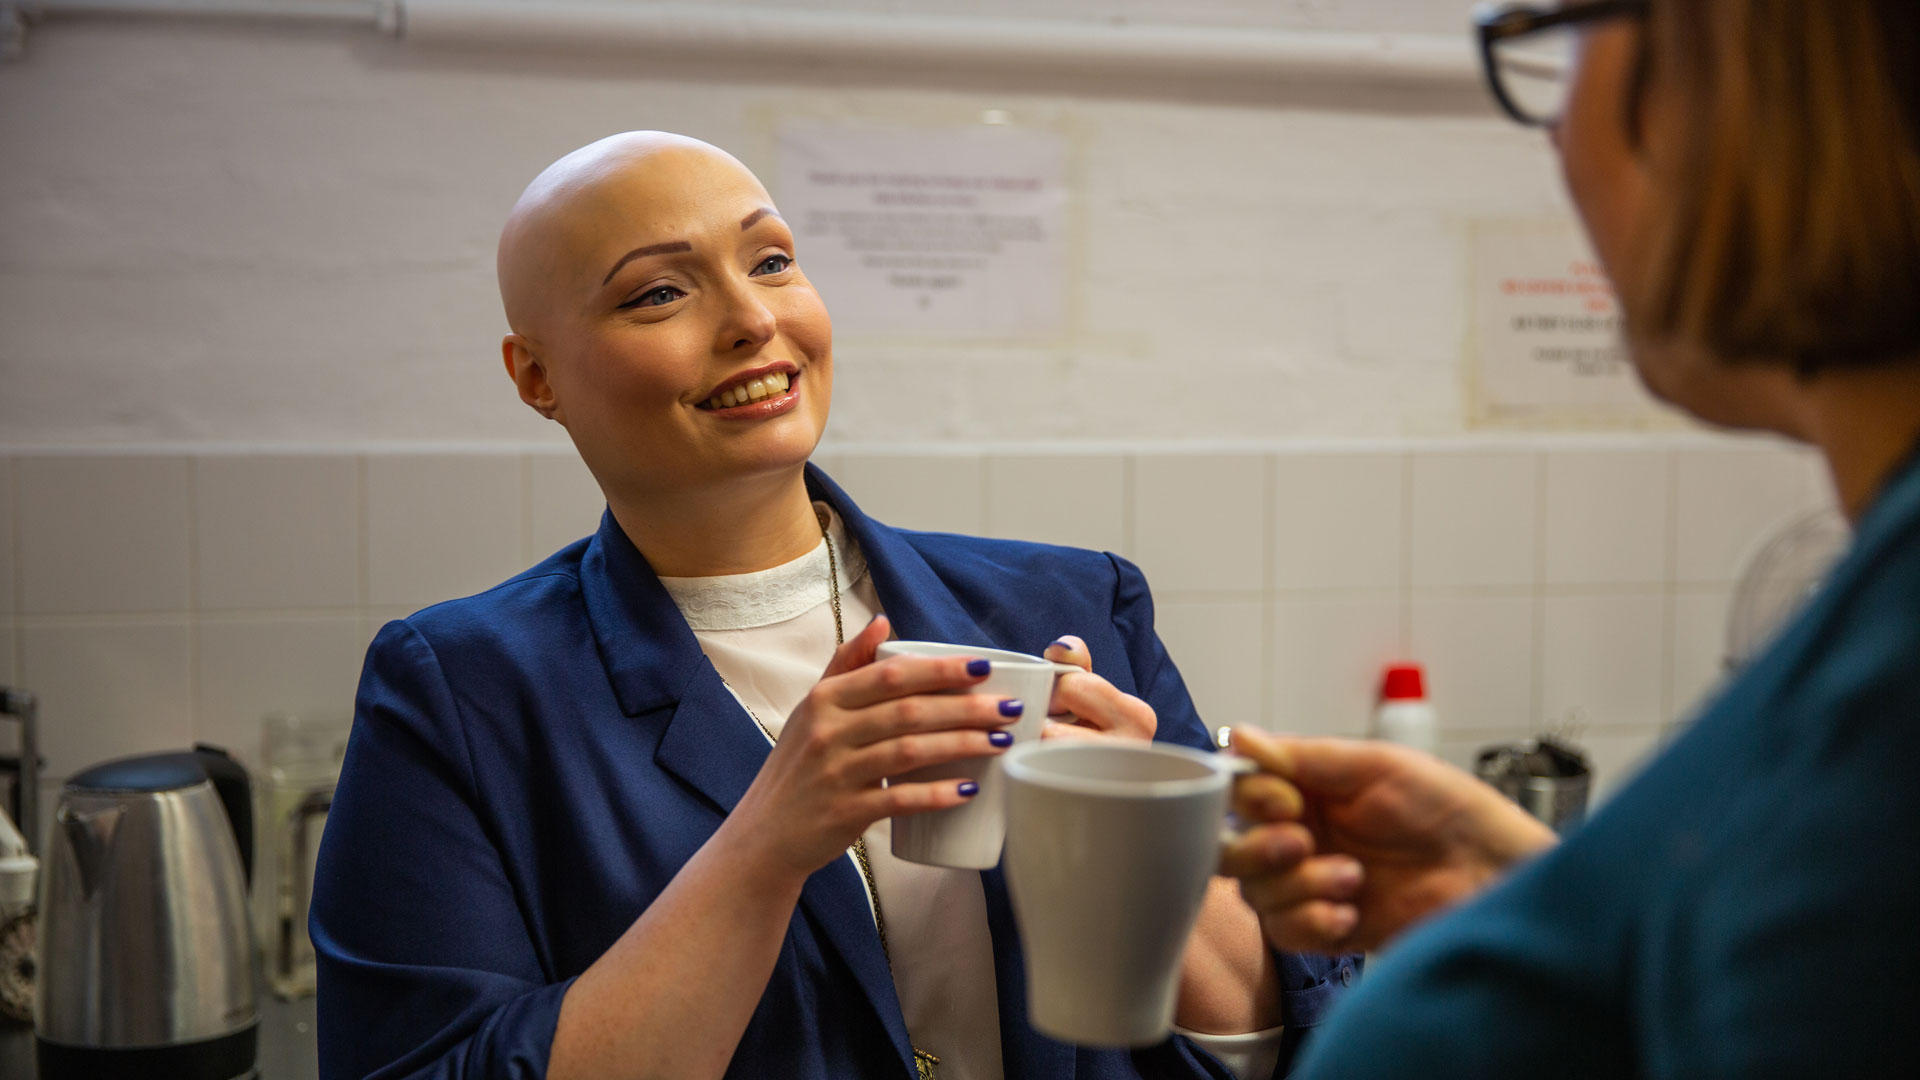 A woman smiles as she speaks with a colleague on their tea break